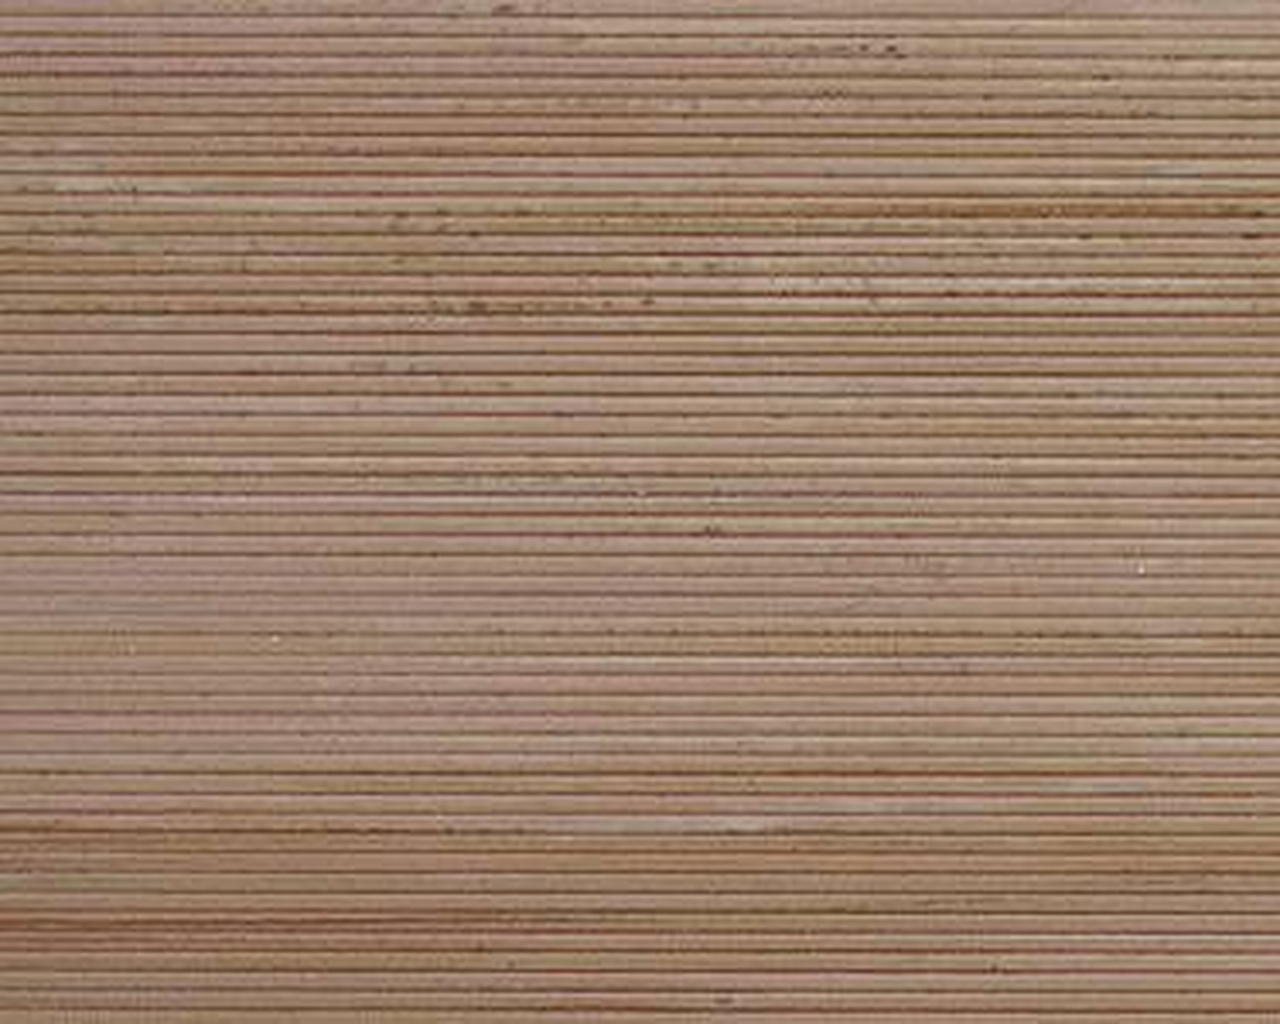 Plastruct 91530 PS 33 Wood Planking Patterned Sheet